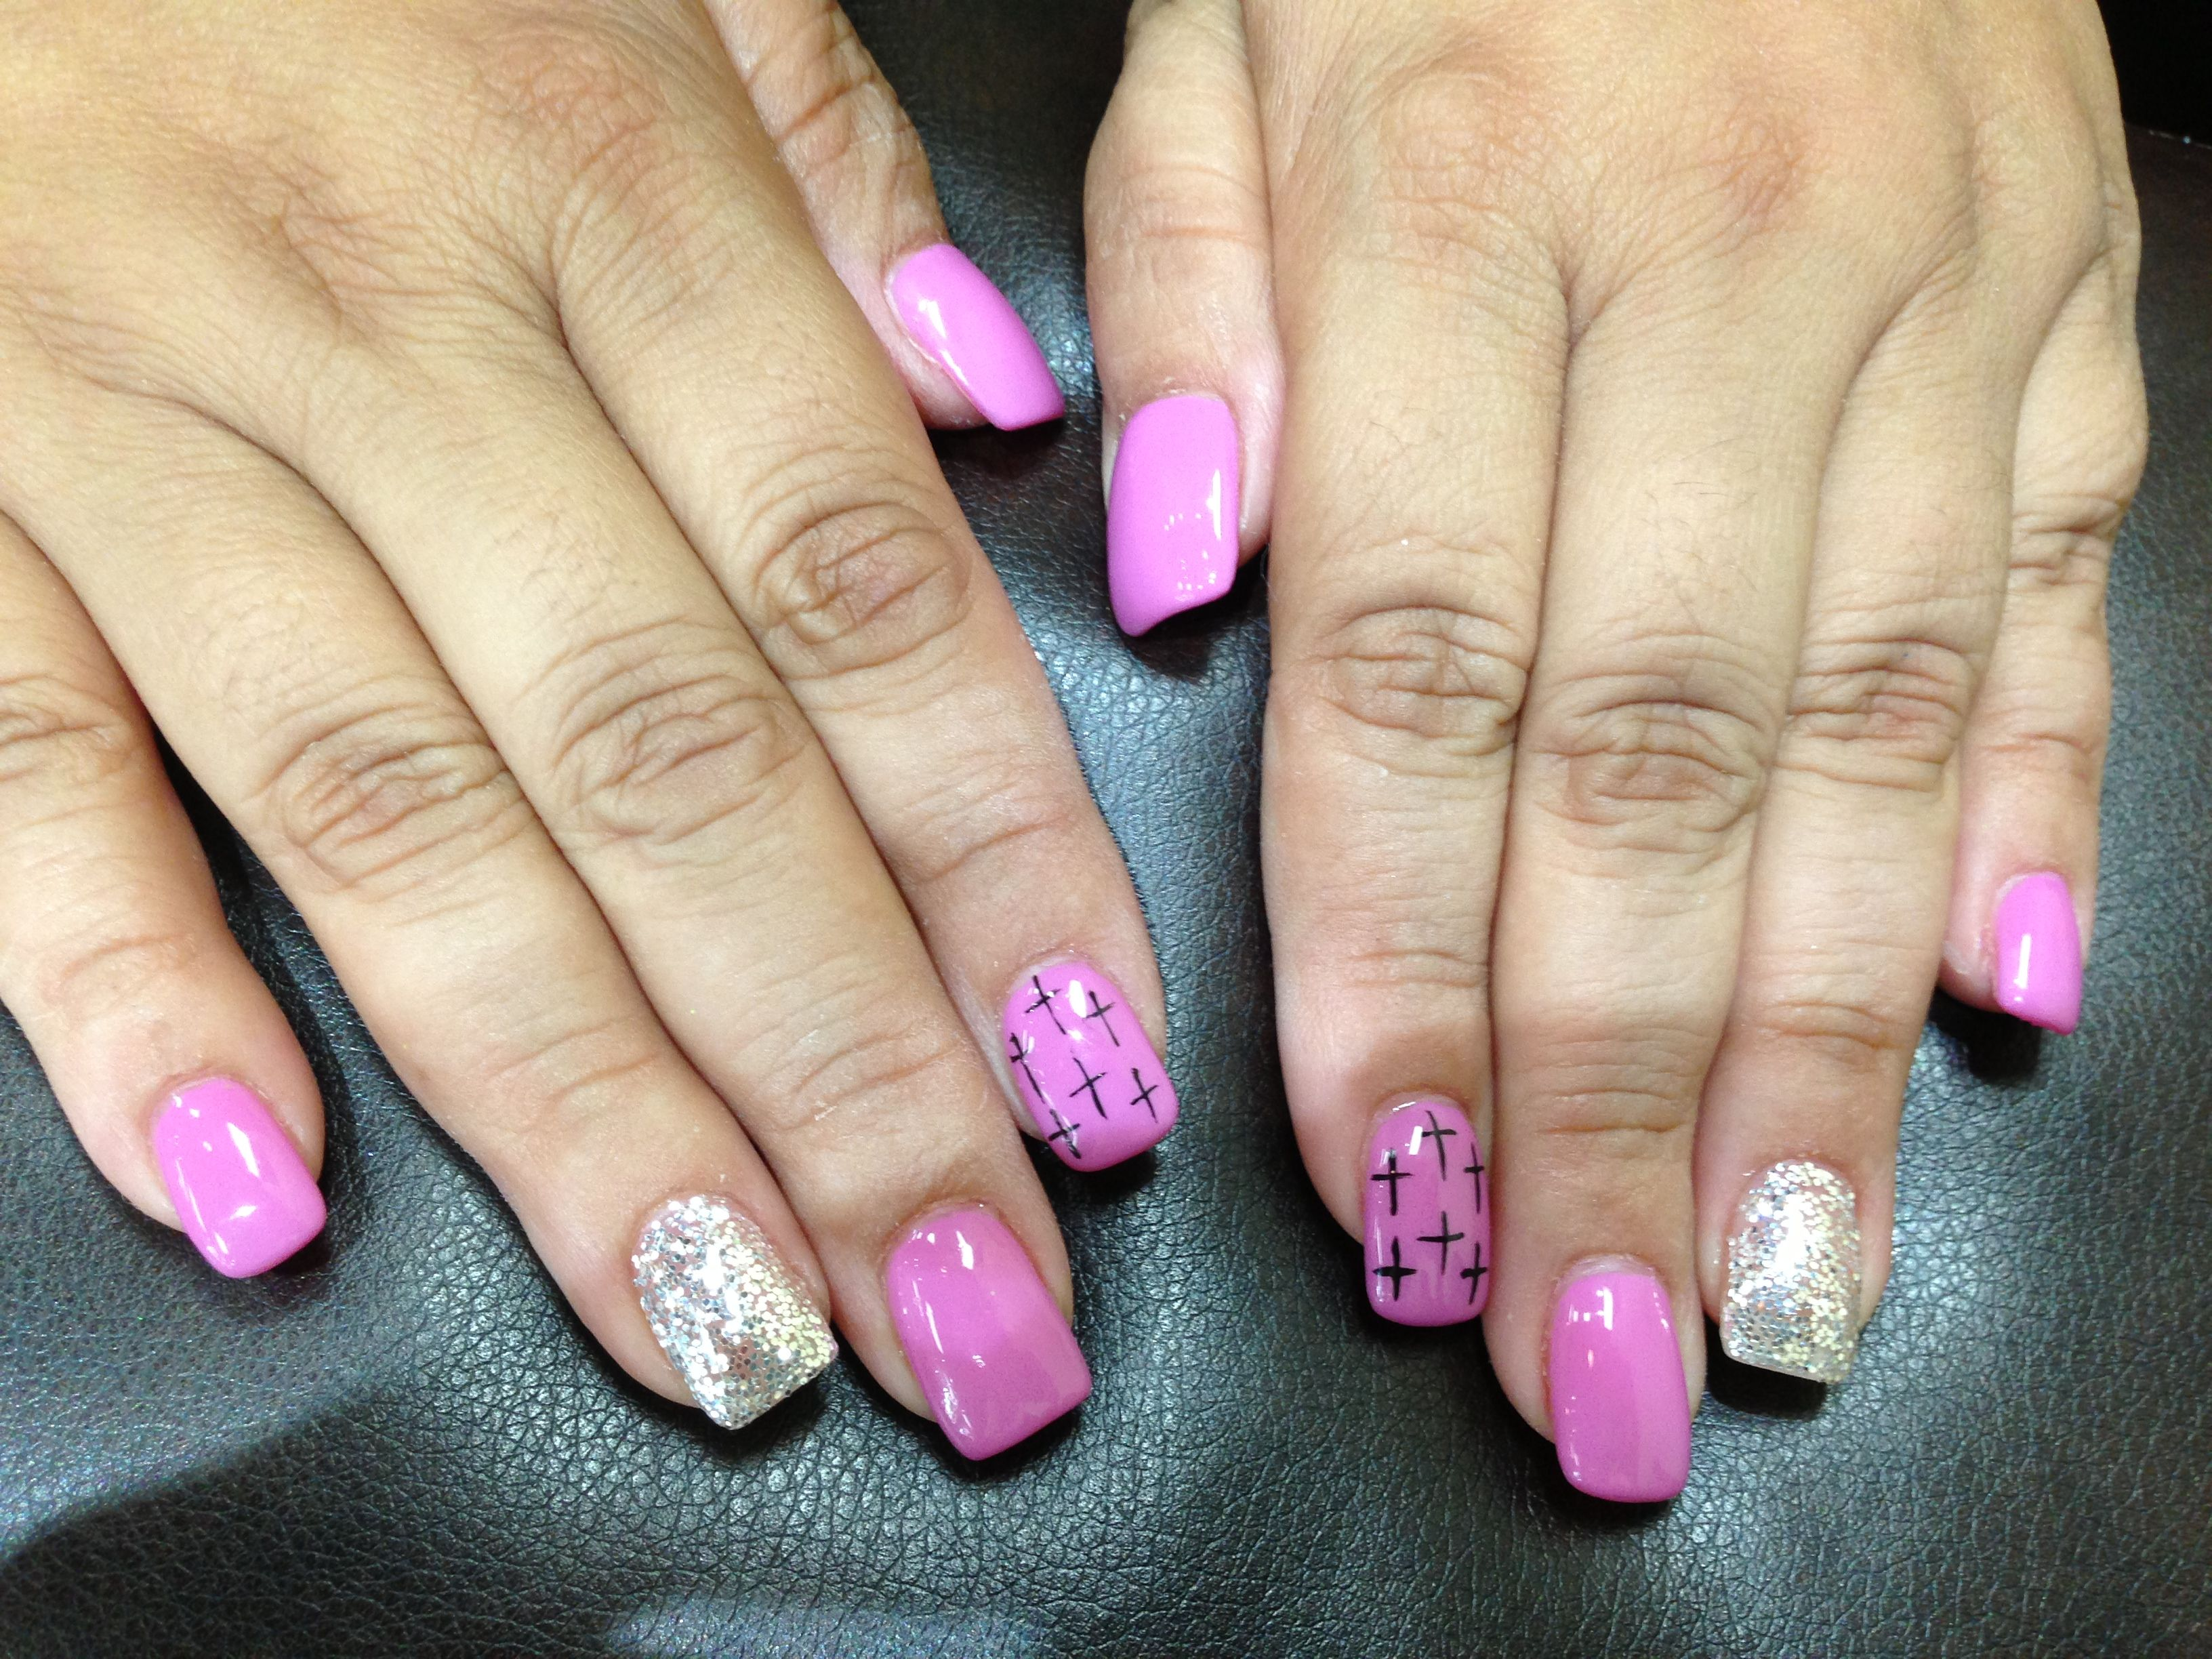 Fun Gel Nails With Crosses And Glitter Nails Pinterest Nail